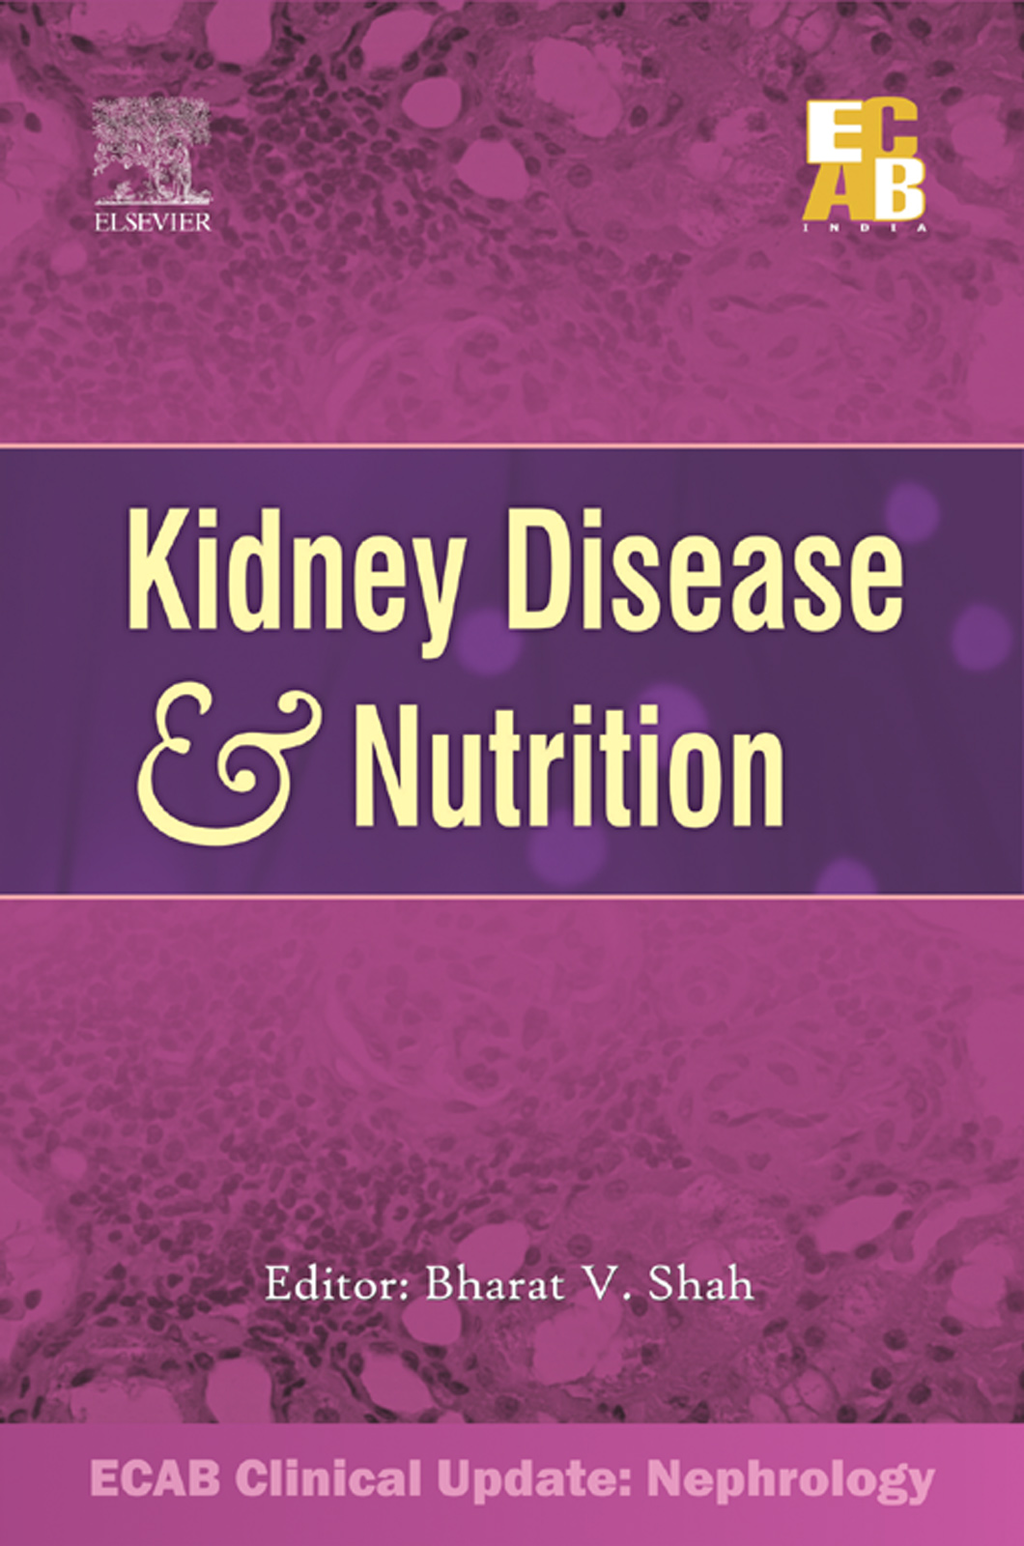 Kidney Disease and Nutrition - ECAB By: